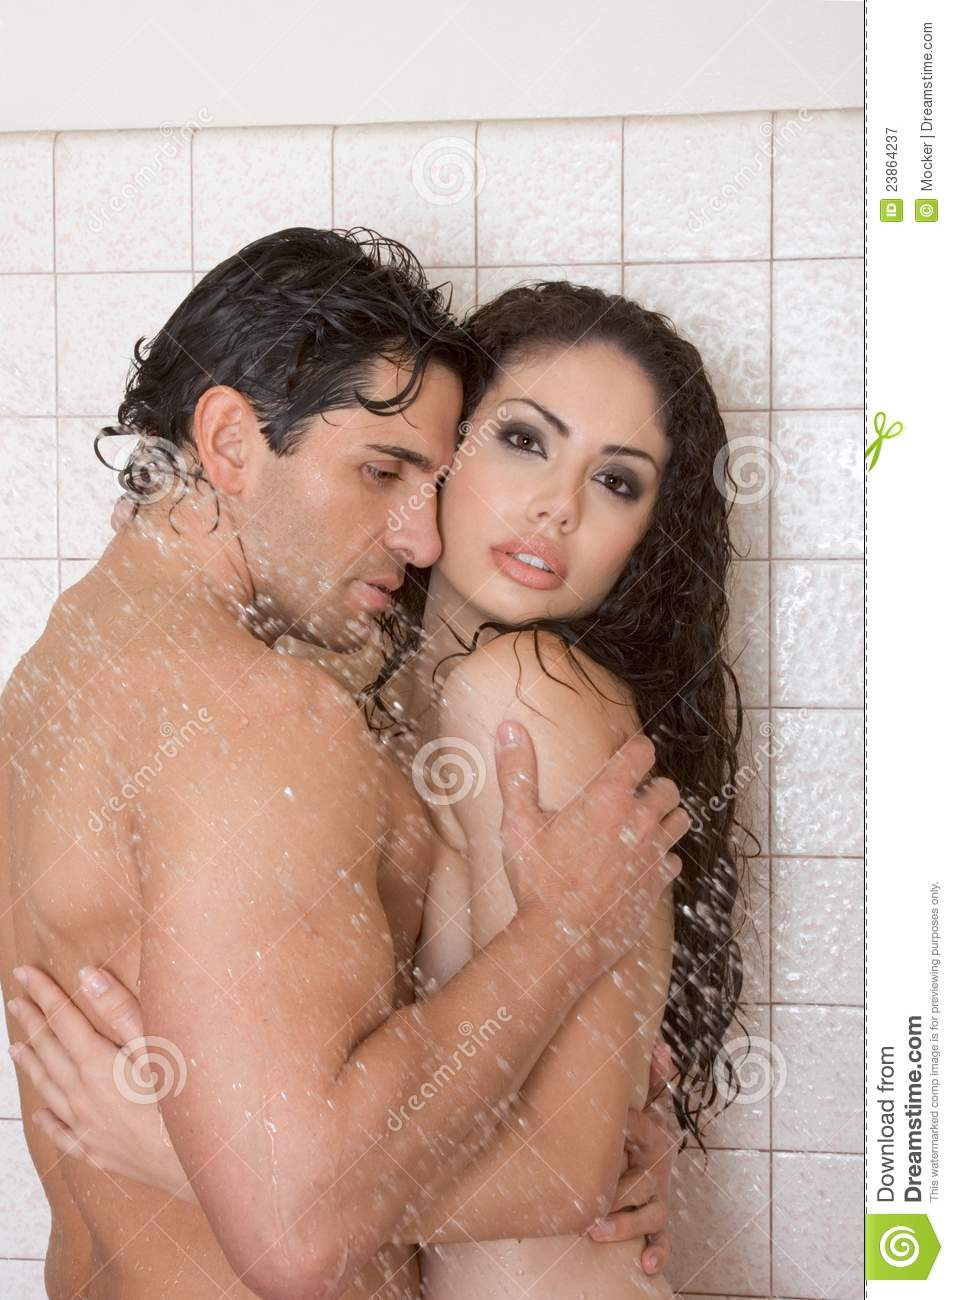 Man and woman shower together naked long legs!